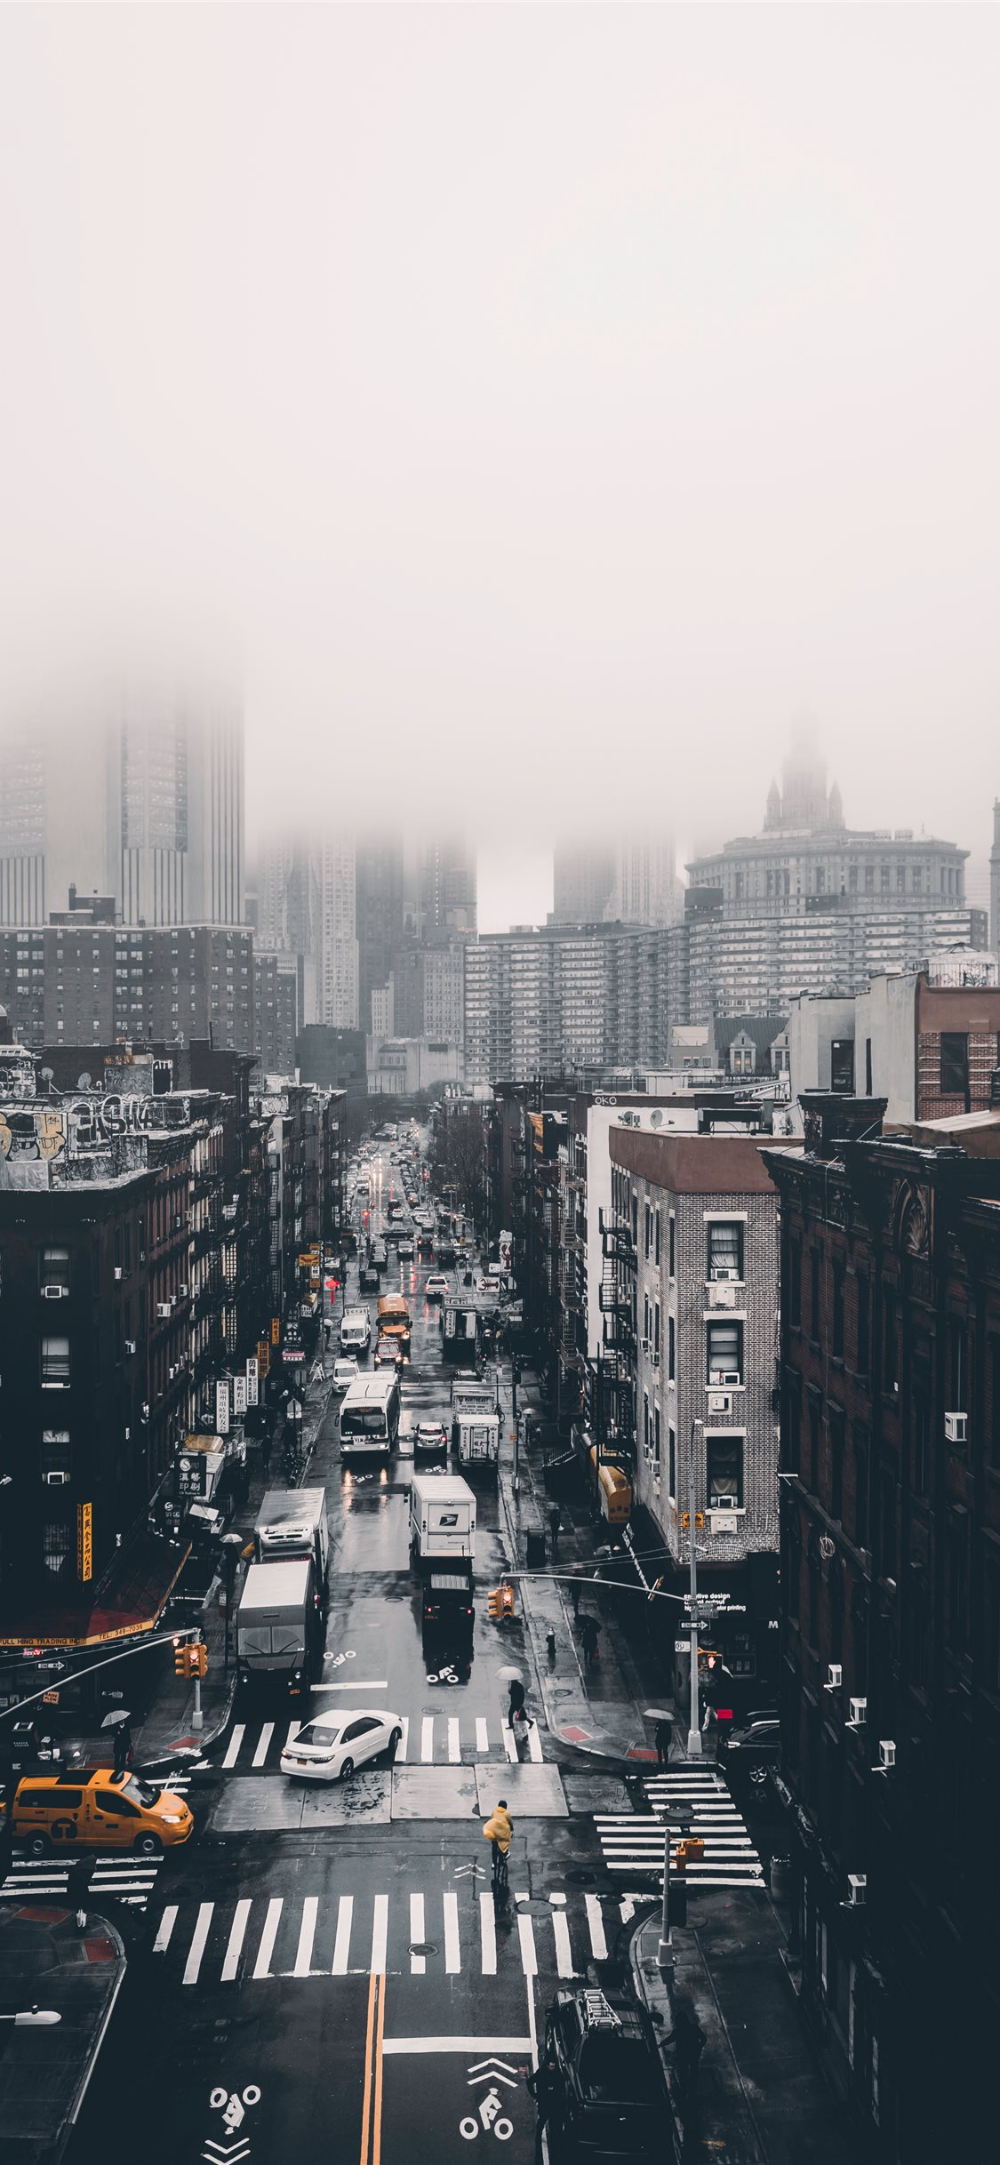 Foggy Day Iphone X Wallpapers Landscape Wallpaper Iphone Backgrounds Tumblr Live Wallpaper Iphone